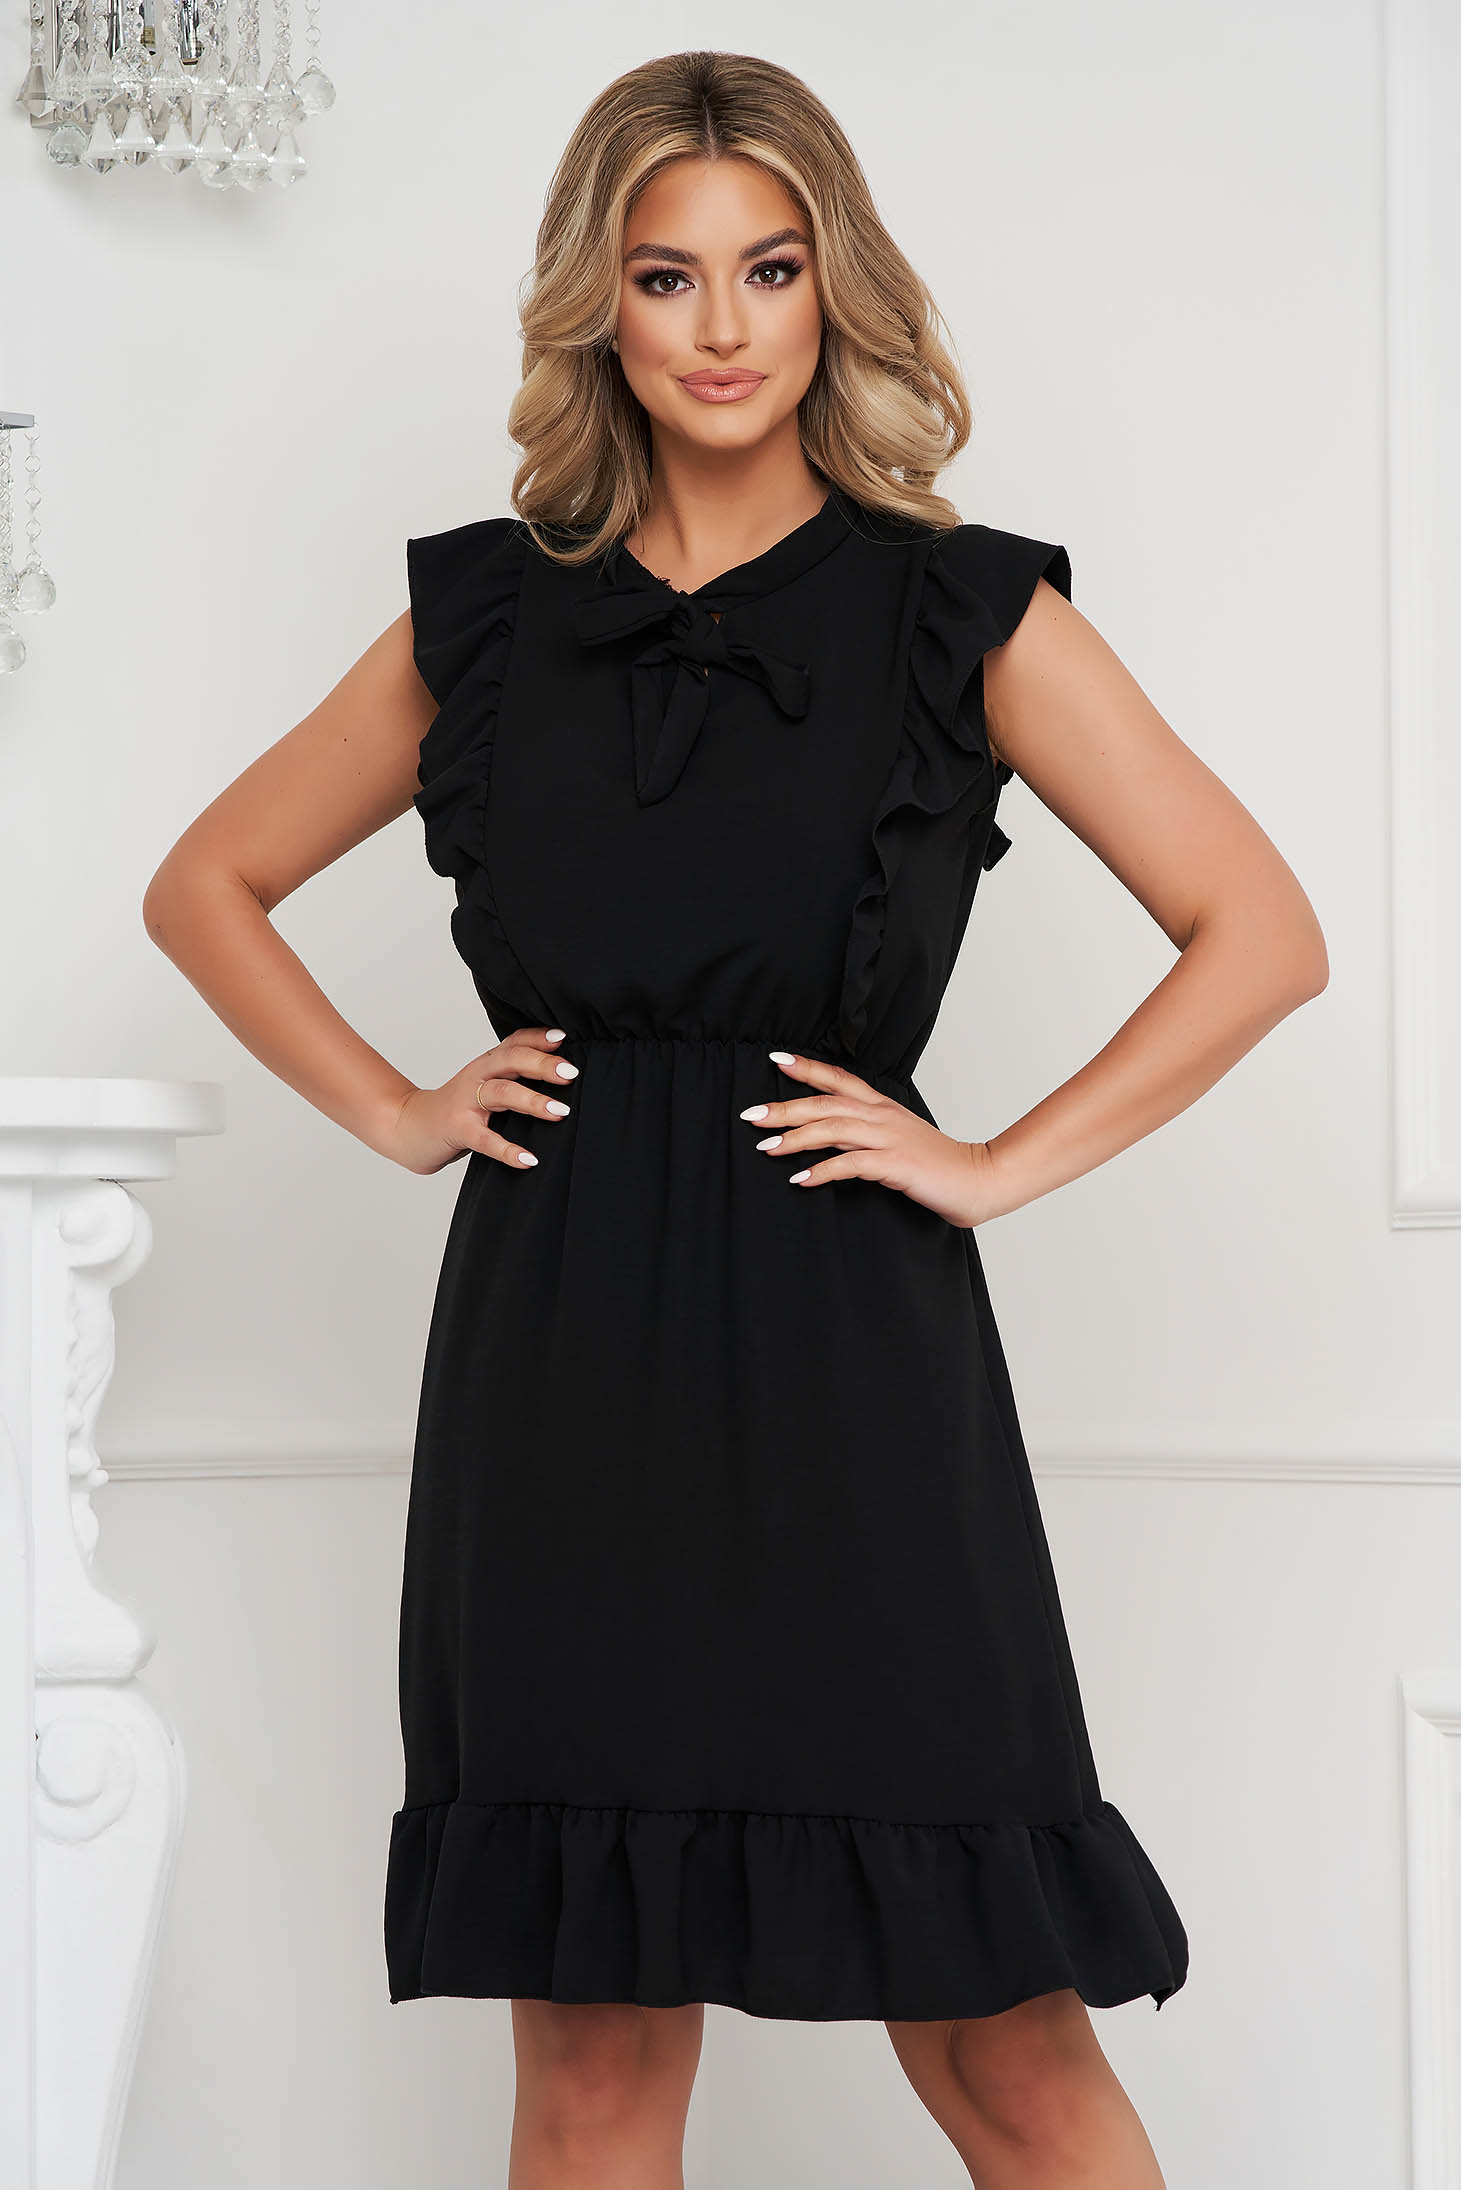 Black dress short cut cloche with elastic waist airy fabric with ruffle details